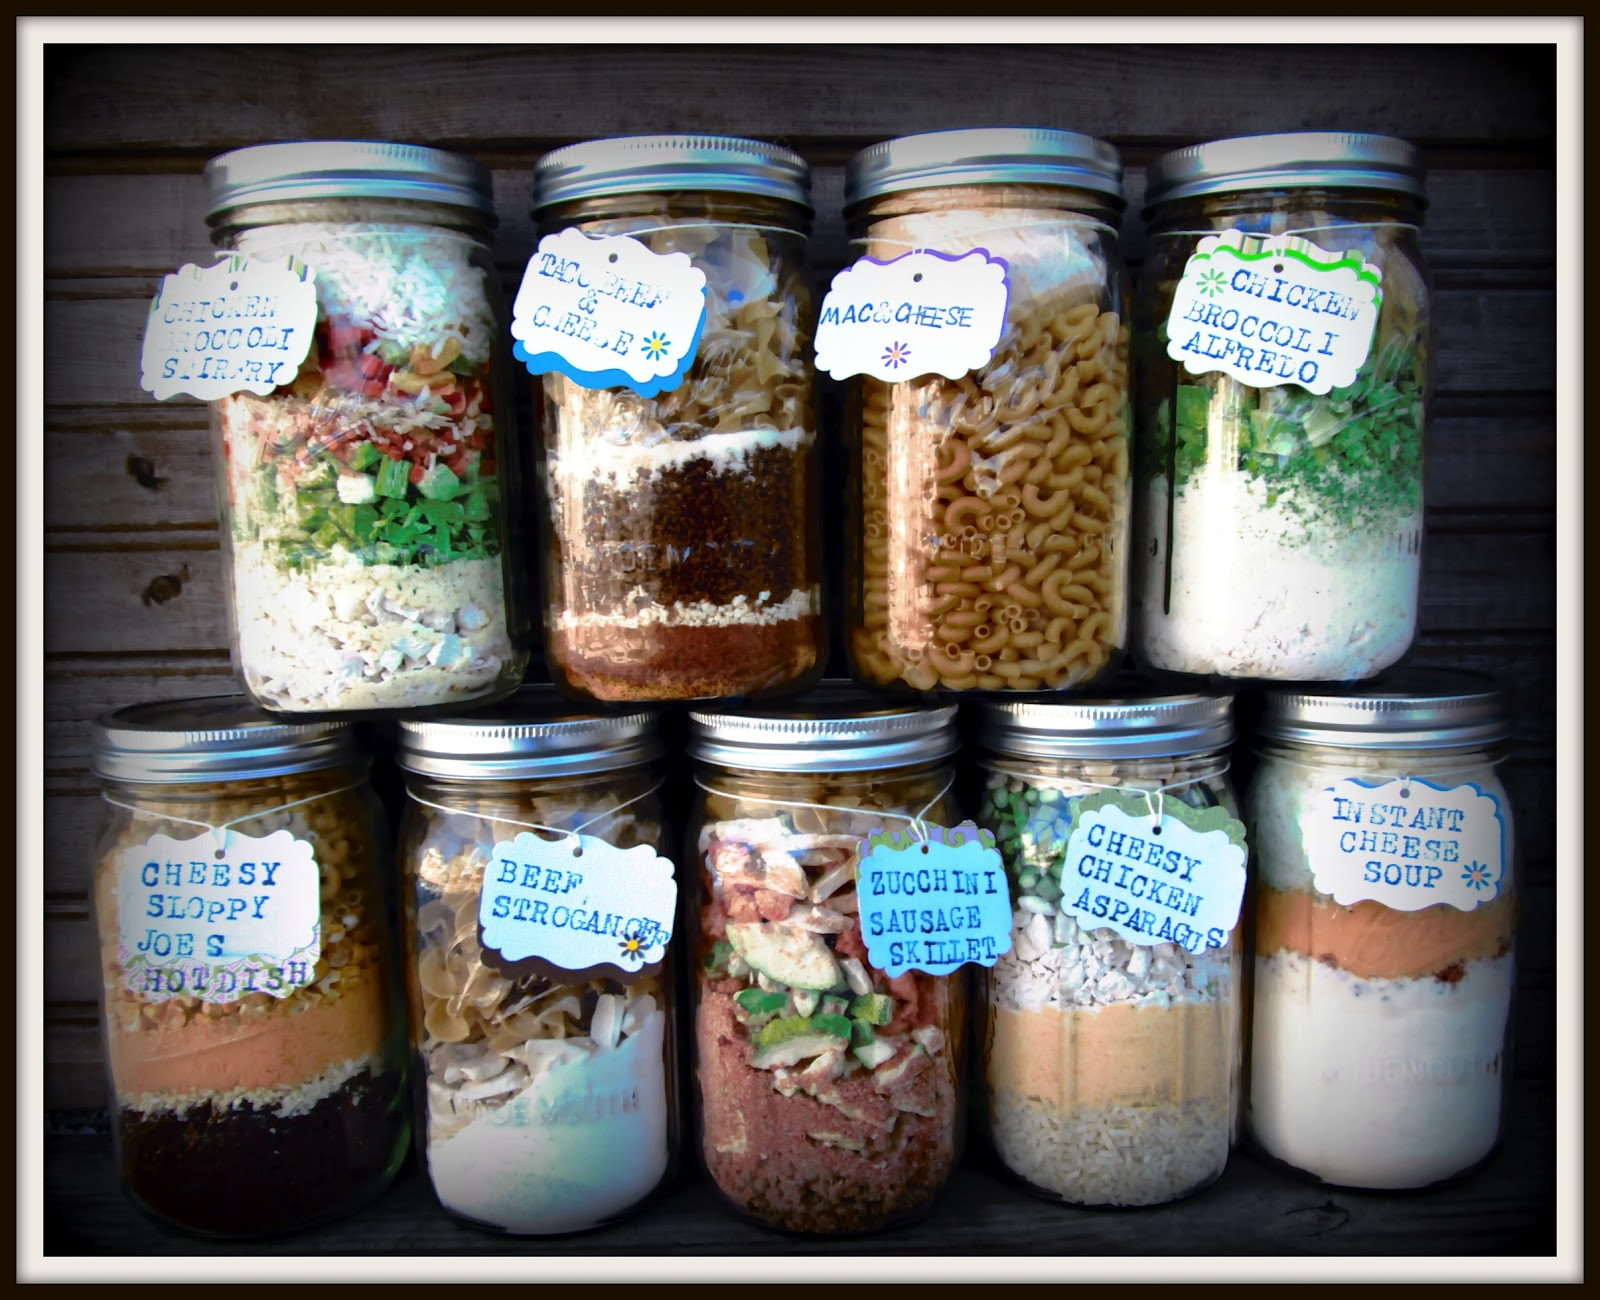 Rainy Day Food Storage: 3 Free Meal39;s In Jars Recipes